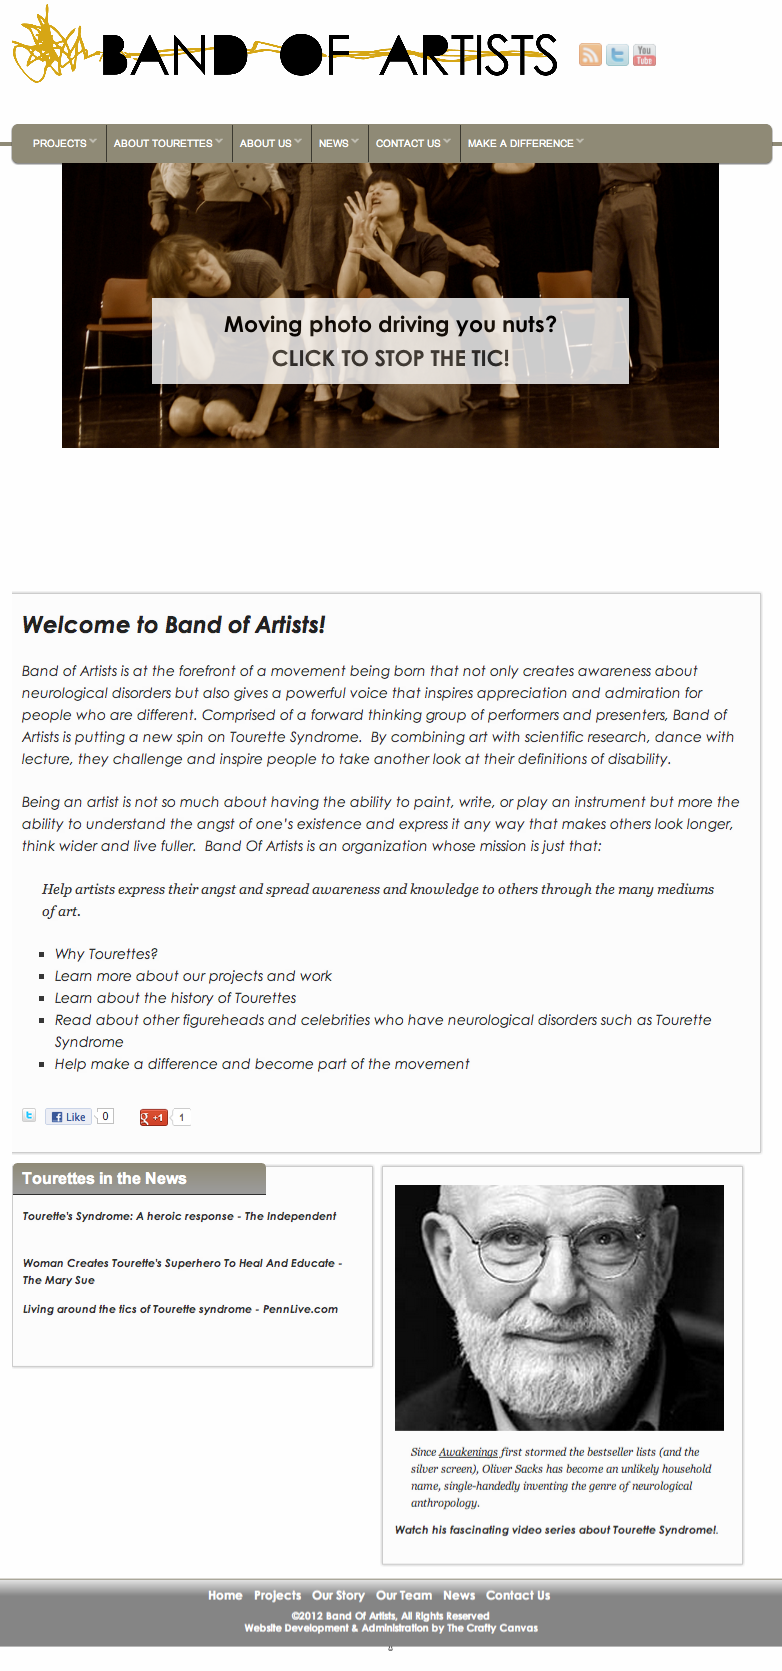 BandOfArtists.org Responsive Design: Tablet Friendly Layout